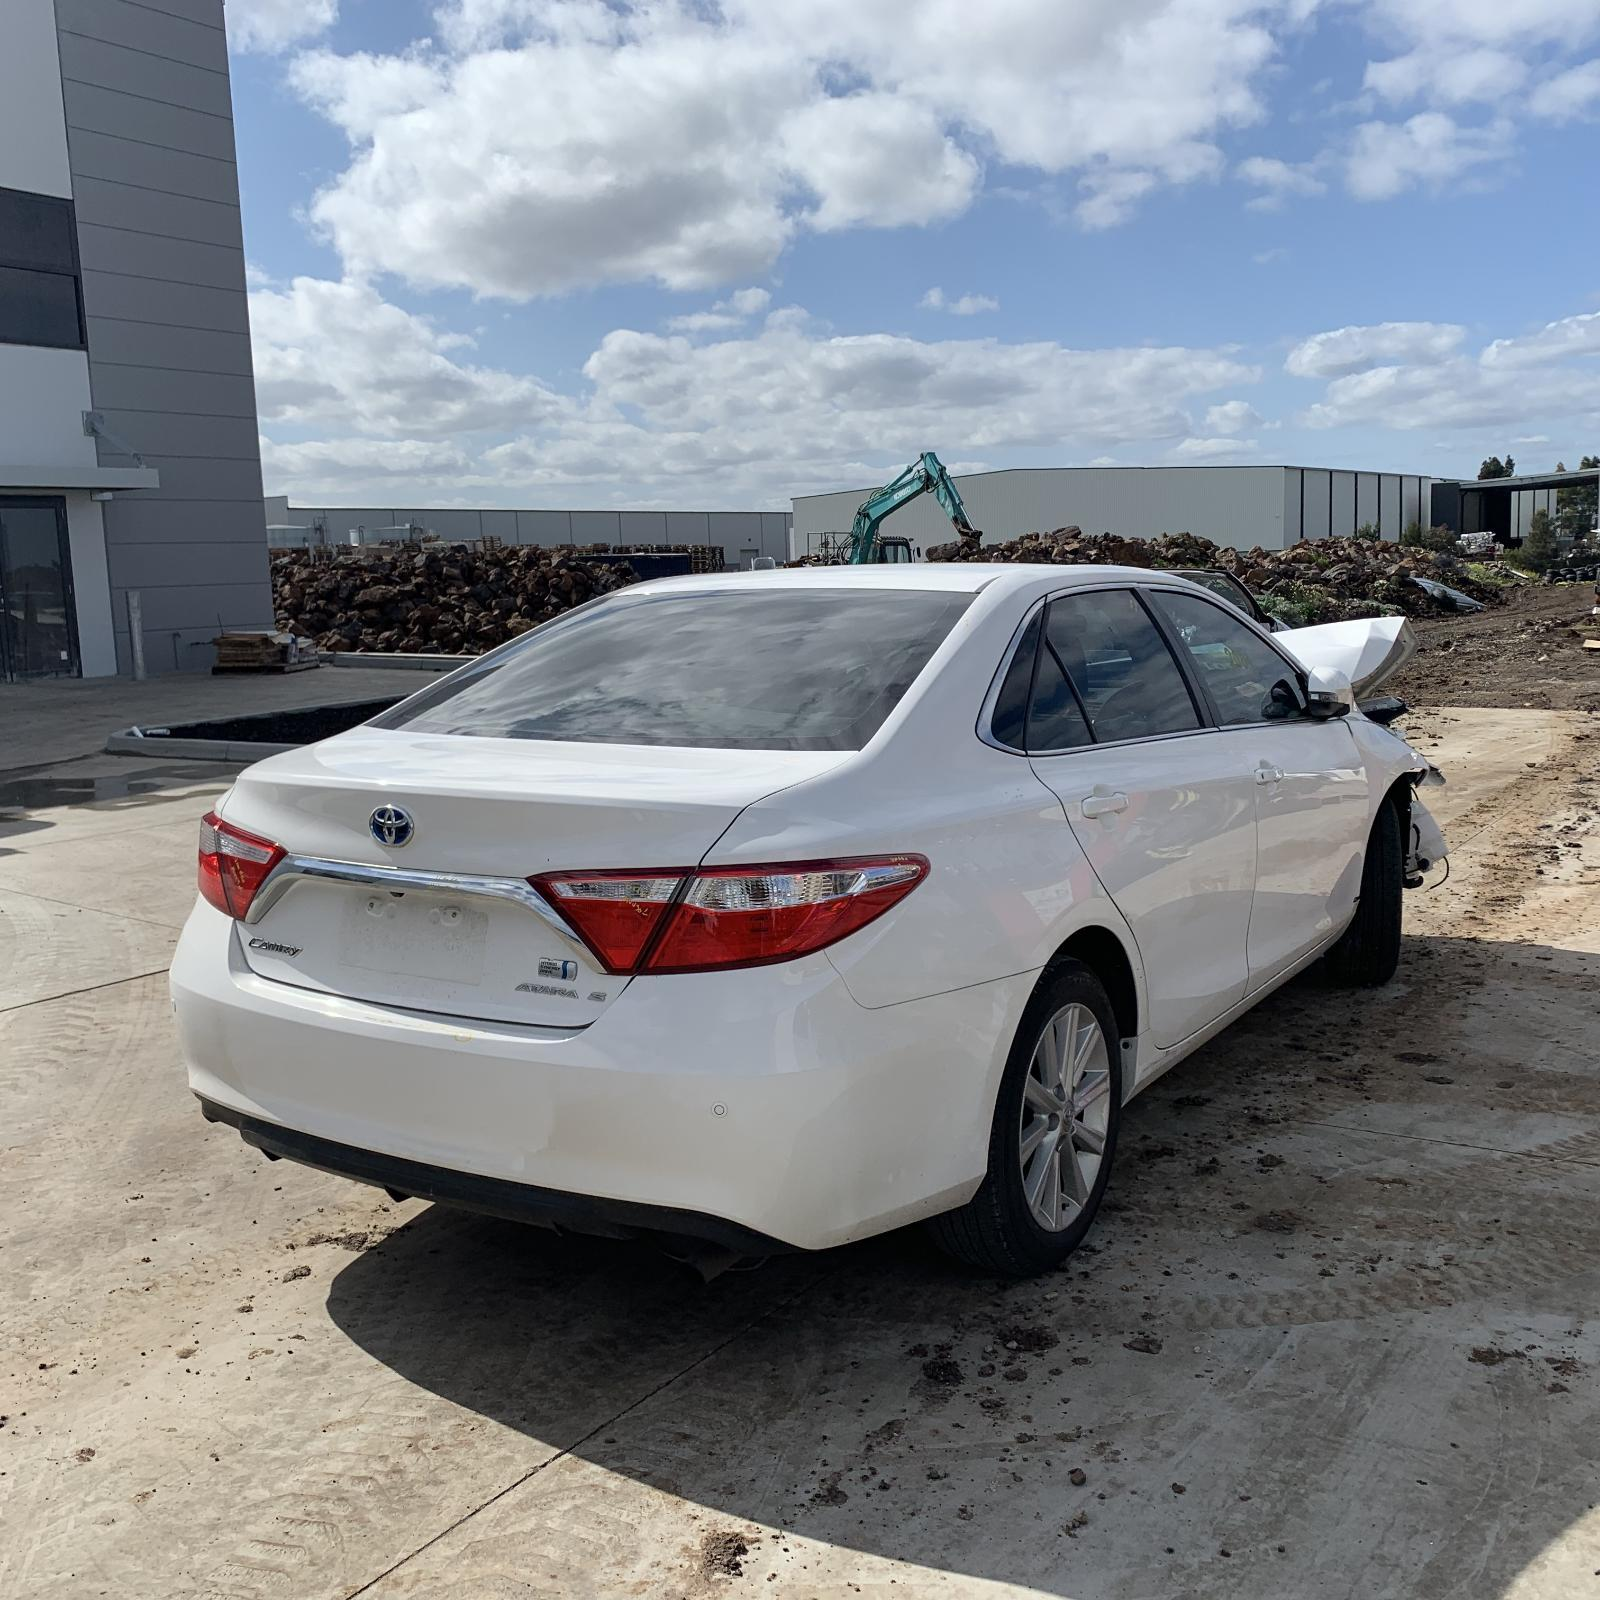 Toyota CAMRY Hybrid Atara S 2AR-FXE 2.5L Engine Automatic FWD Transmission 05/15 - 10/17